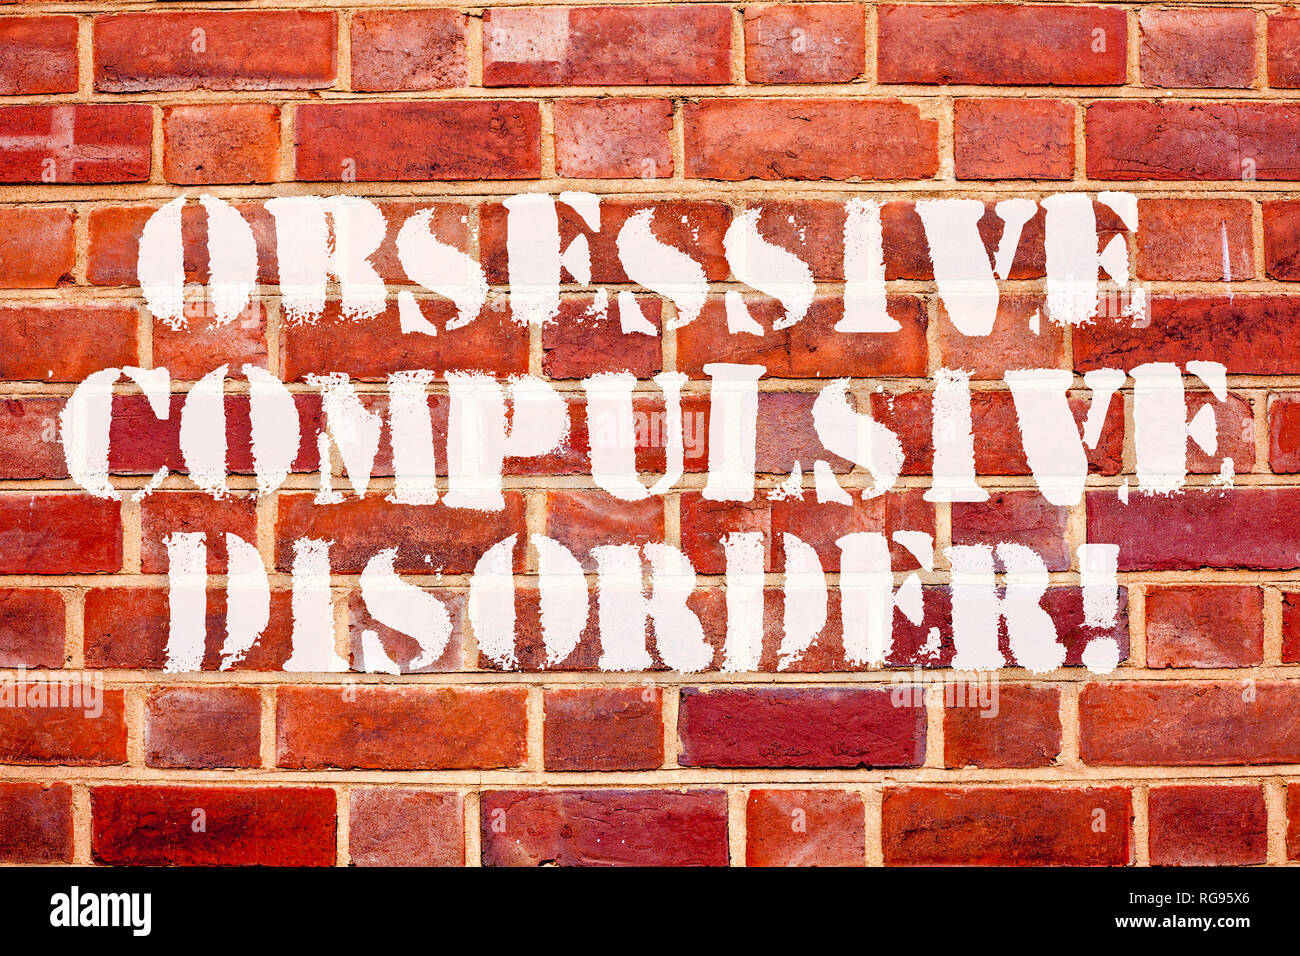 Word writing text Obsessive Compulsive Disorder. Business concept for Person has uncontrollable reoccurring thoughts - Stock Image